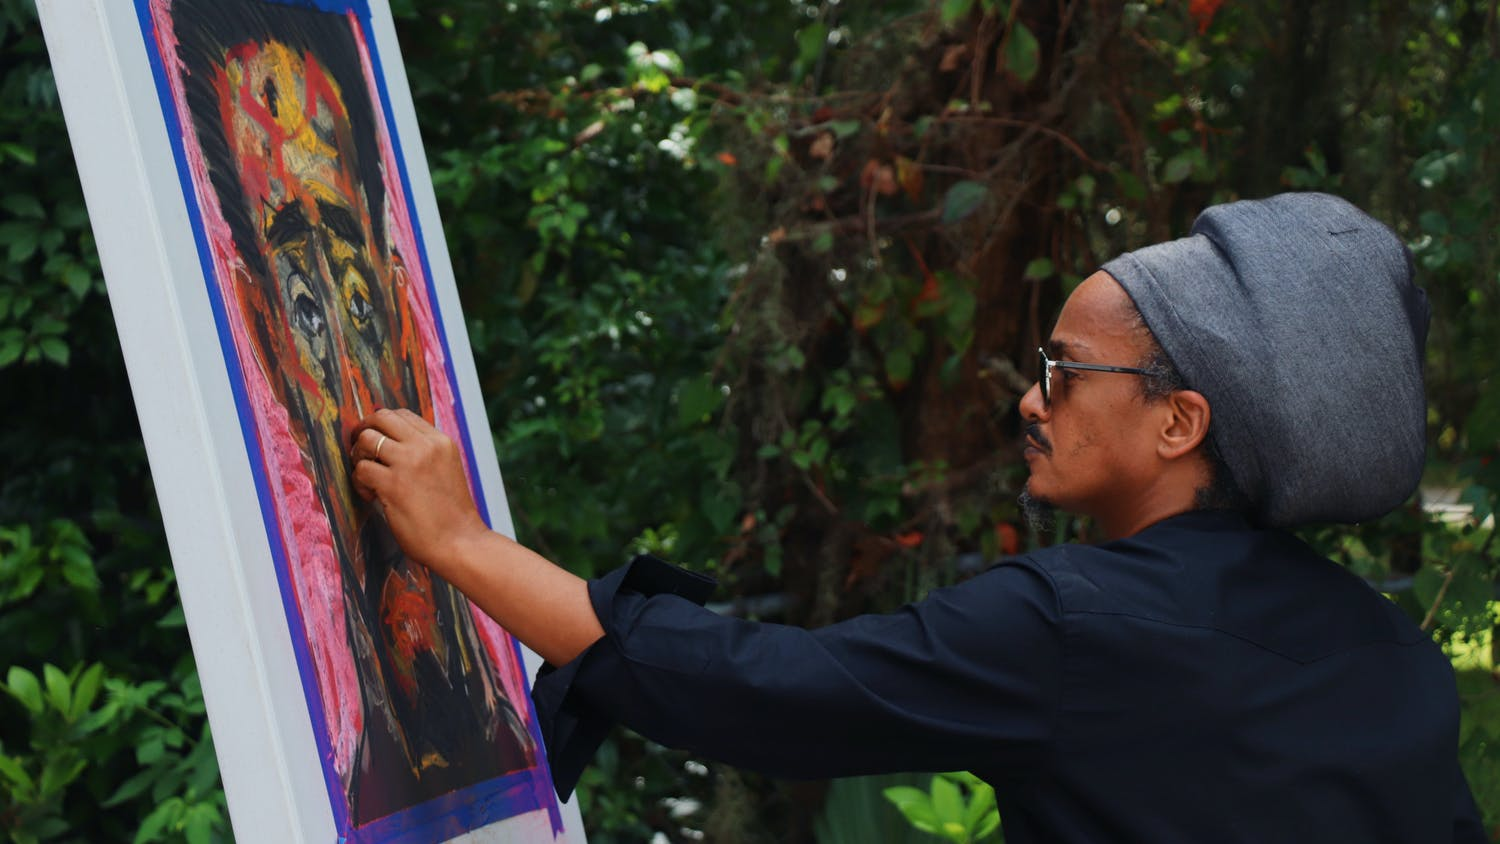 Prince Merid Tafesse of Ethiopia, 47, draws a live sketch of Haile Selassie, a former Ethiopian emperor, with pastels at the A. Quinn Jones Museum & Cultural Center on Saturday, Sept. 25, 2021. His exhibition is on display inside of the historic home-turned-museum.